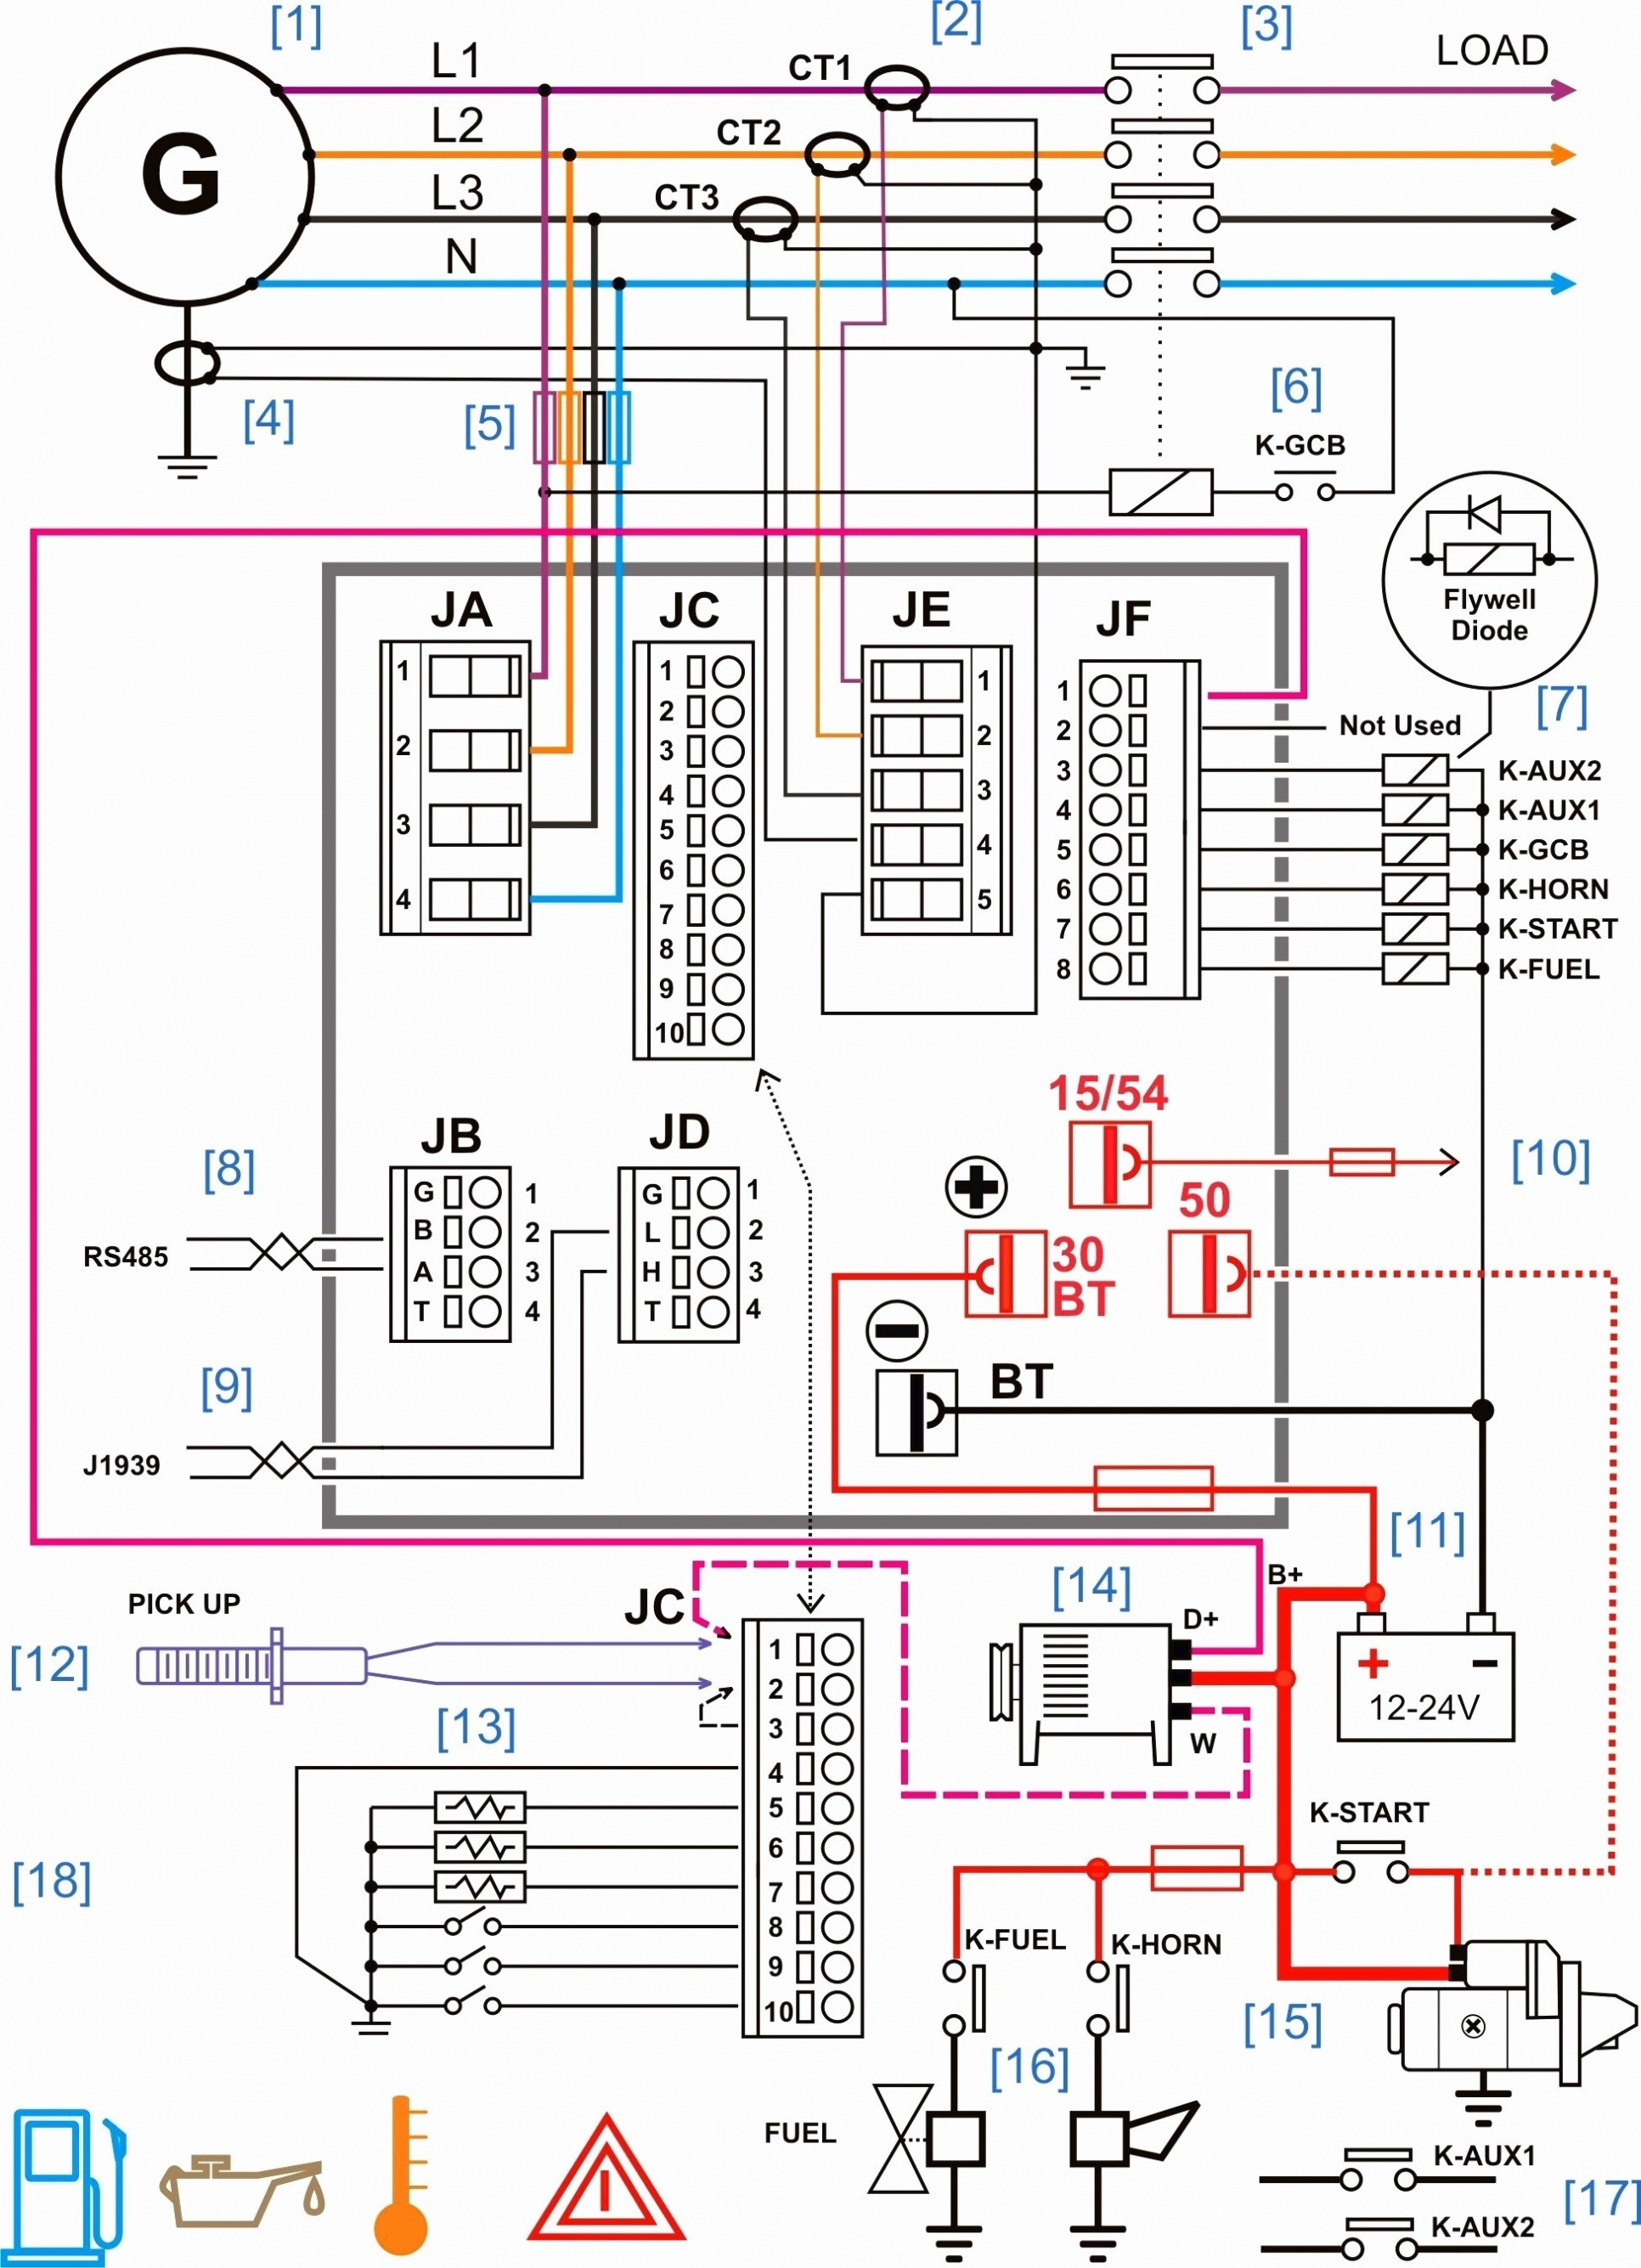 Mouse Trap Car Diagram Bulldog Wiring Diagram Free Downloads Automotive Wiring Diagram Line Of Mouse Trap Car Diagram